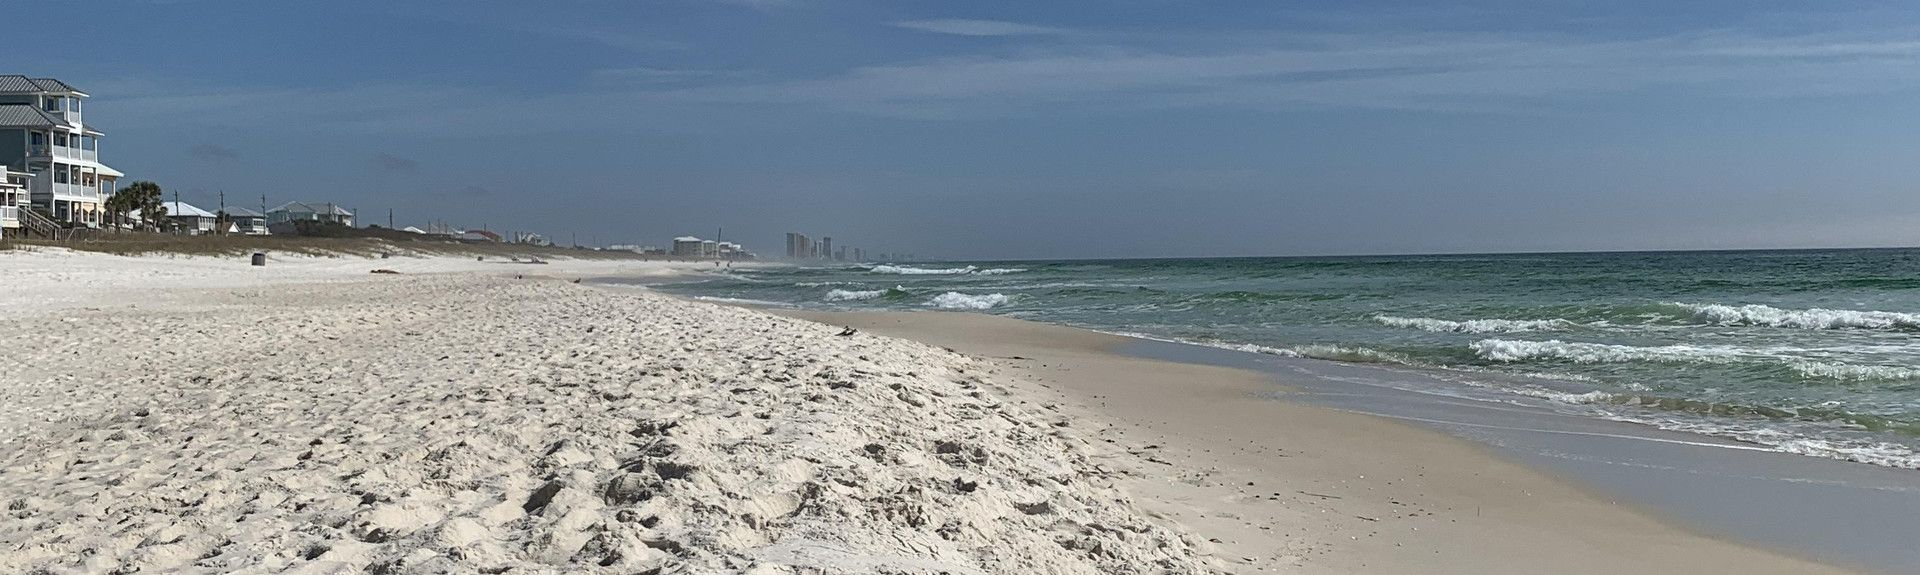 La Valencia Beach Resort, Panama City Beach, Florida, United States of America